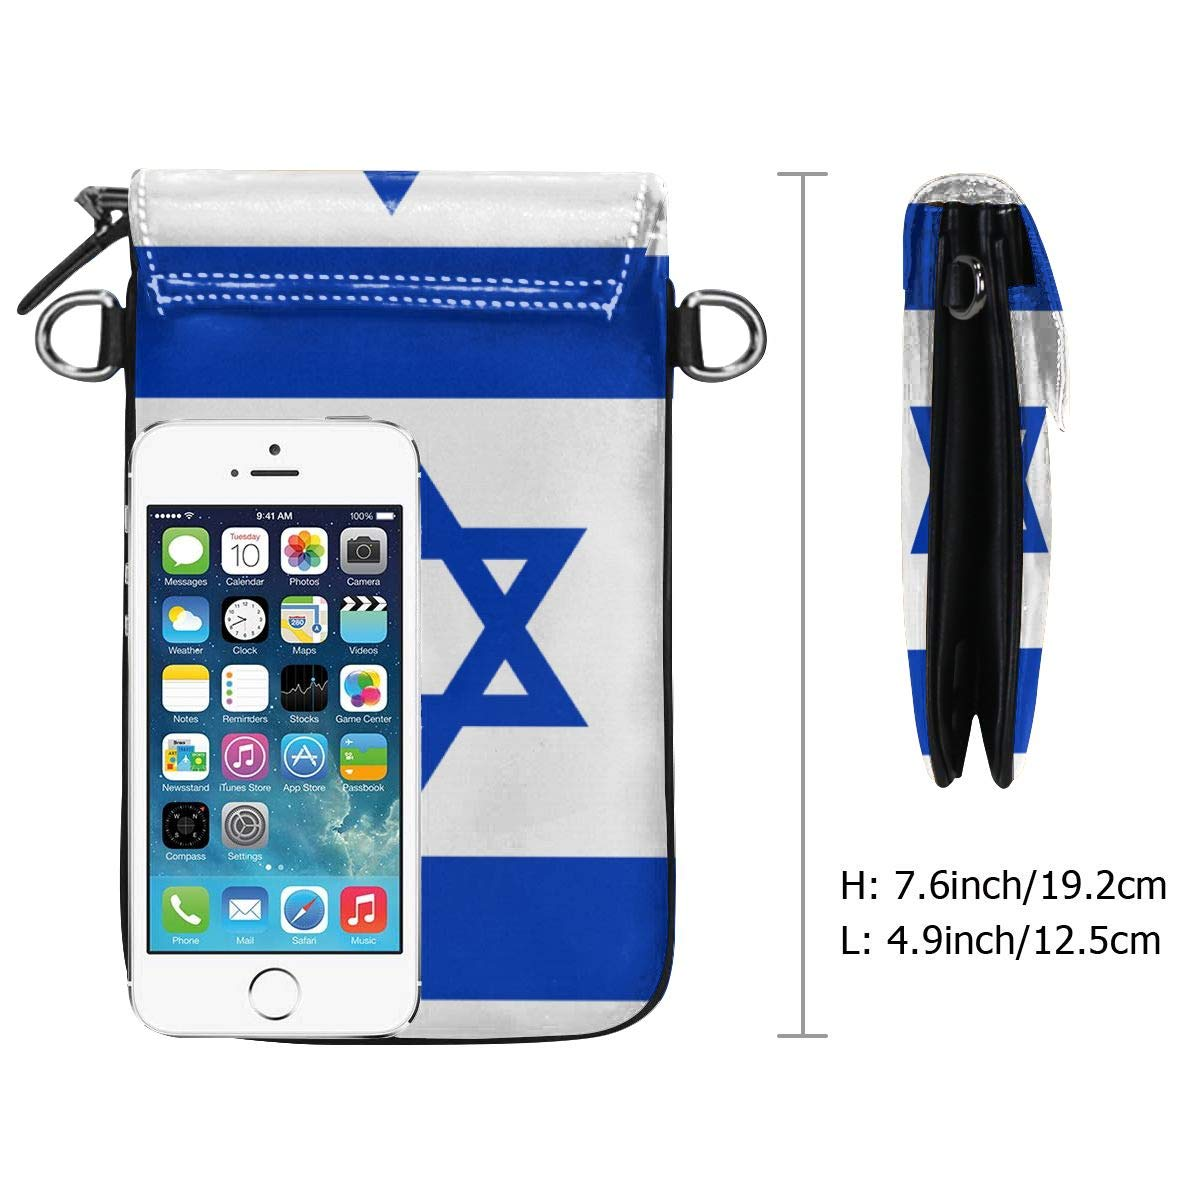 Fghfgh4ghghf Flag of Israel Cell Phone Purse Women PU Leather Multicolor Handbag with Credit Card Slots